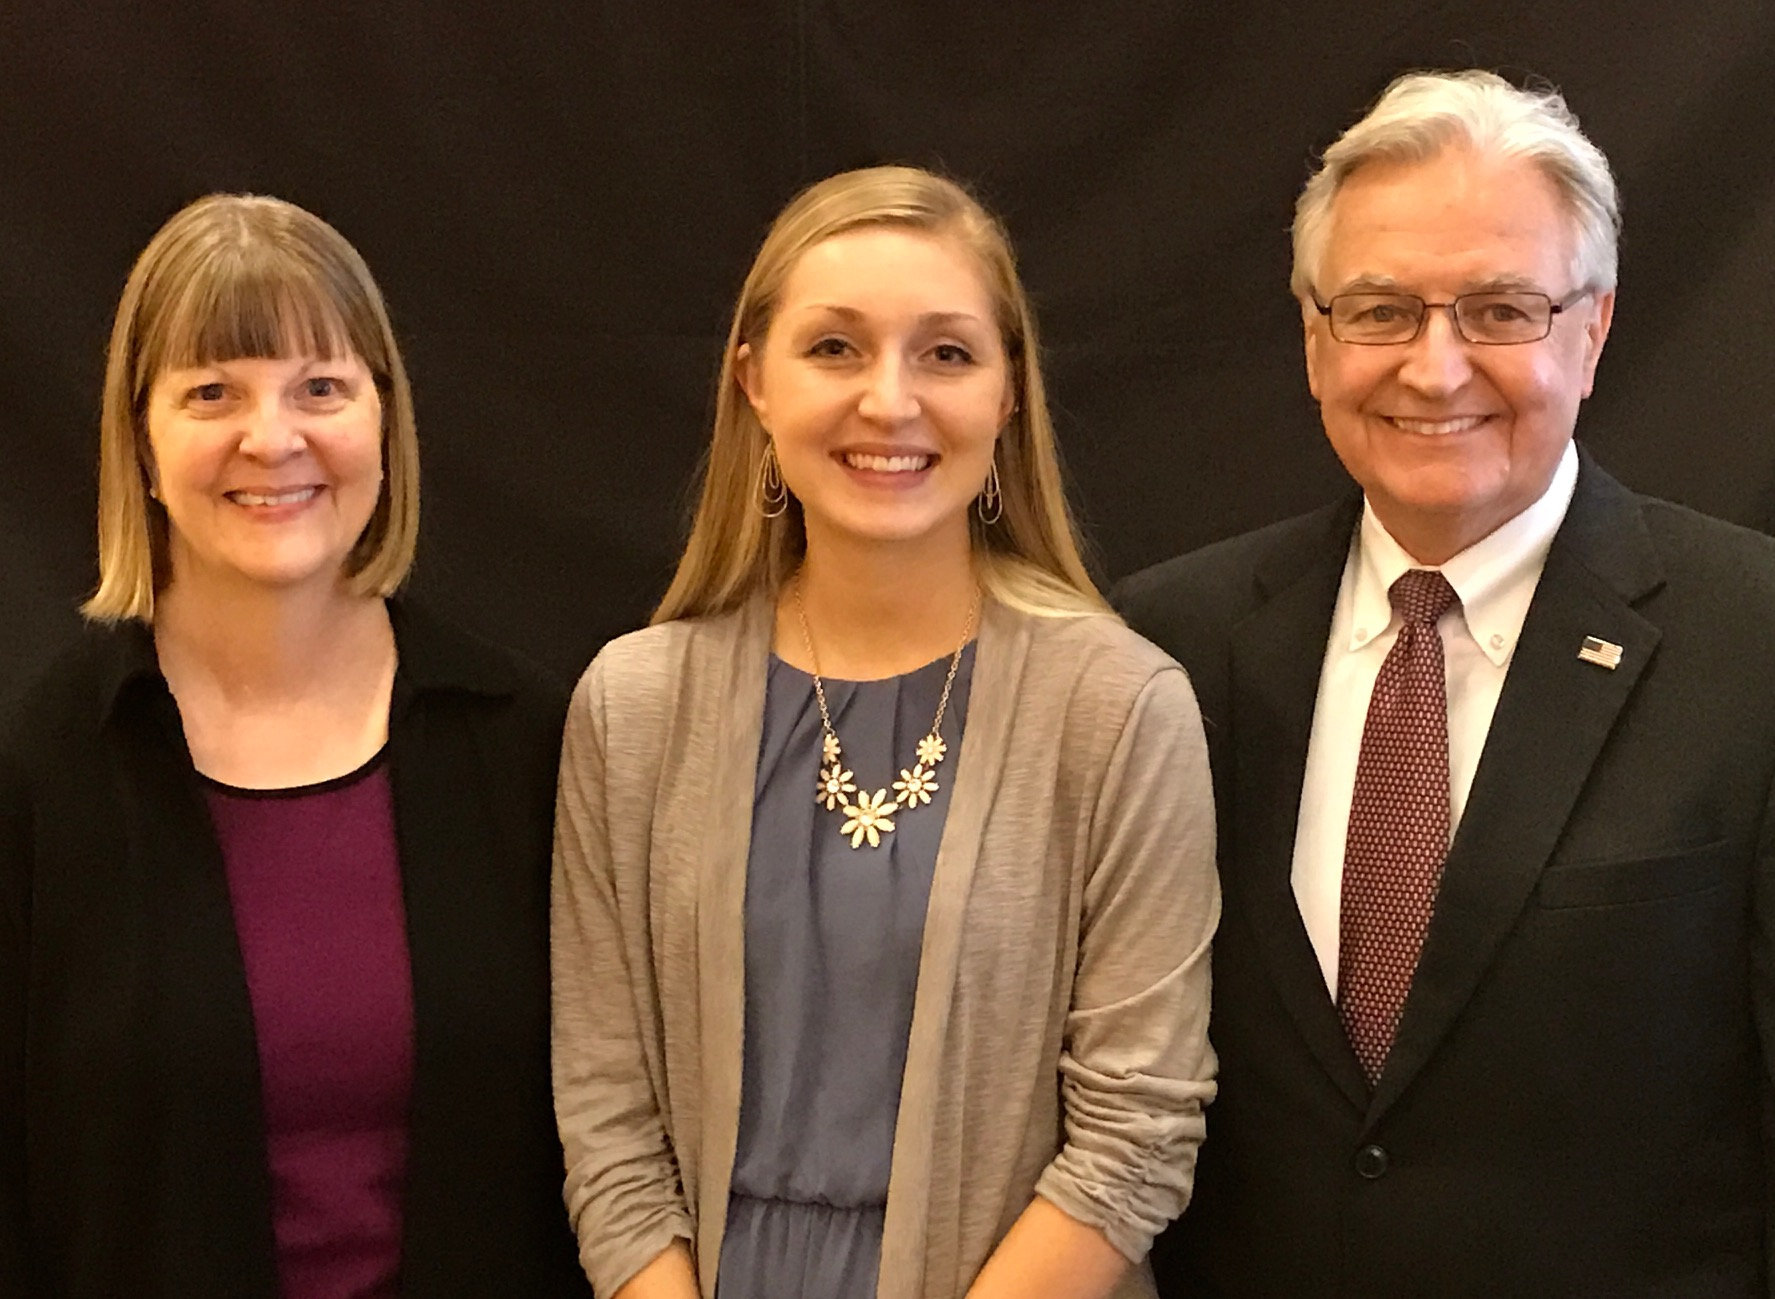 Corrina Dart  was this years' recipient of the Brian LaViolette Scholarship at Bellin College. She is pictured here with Renee and Doug LaViolette